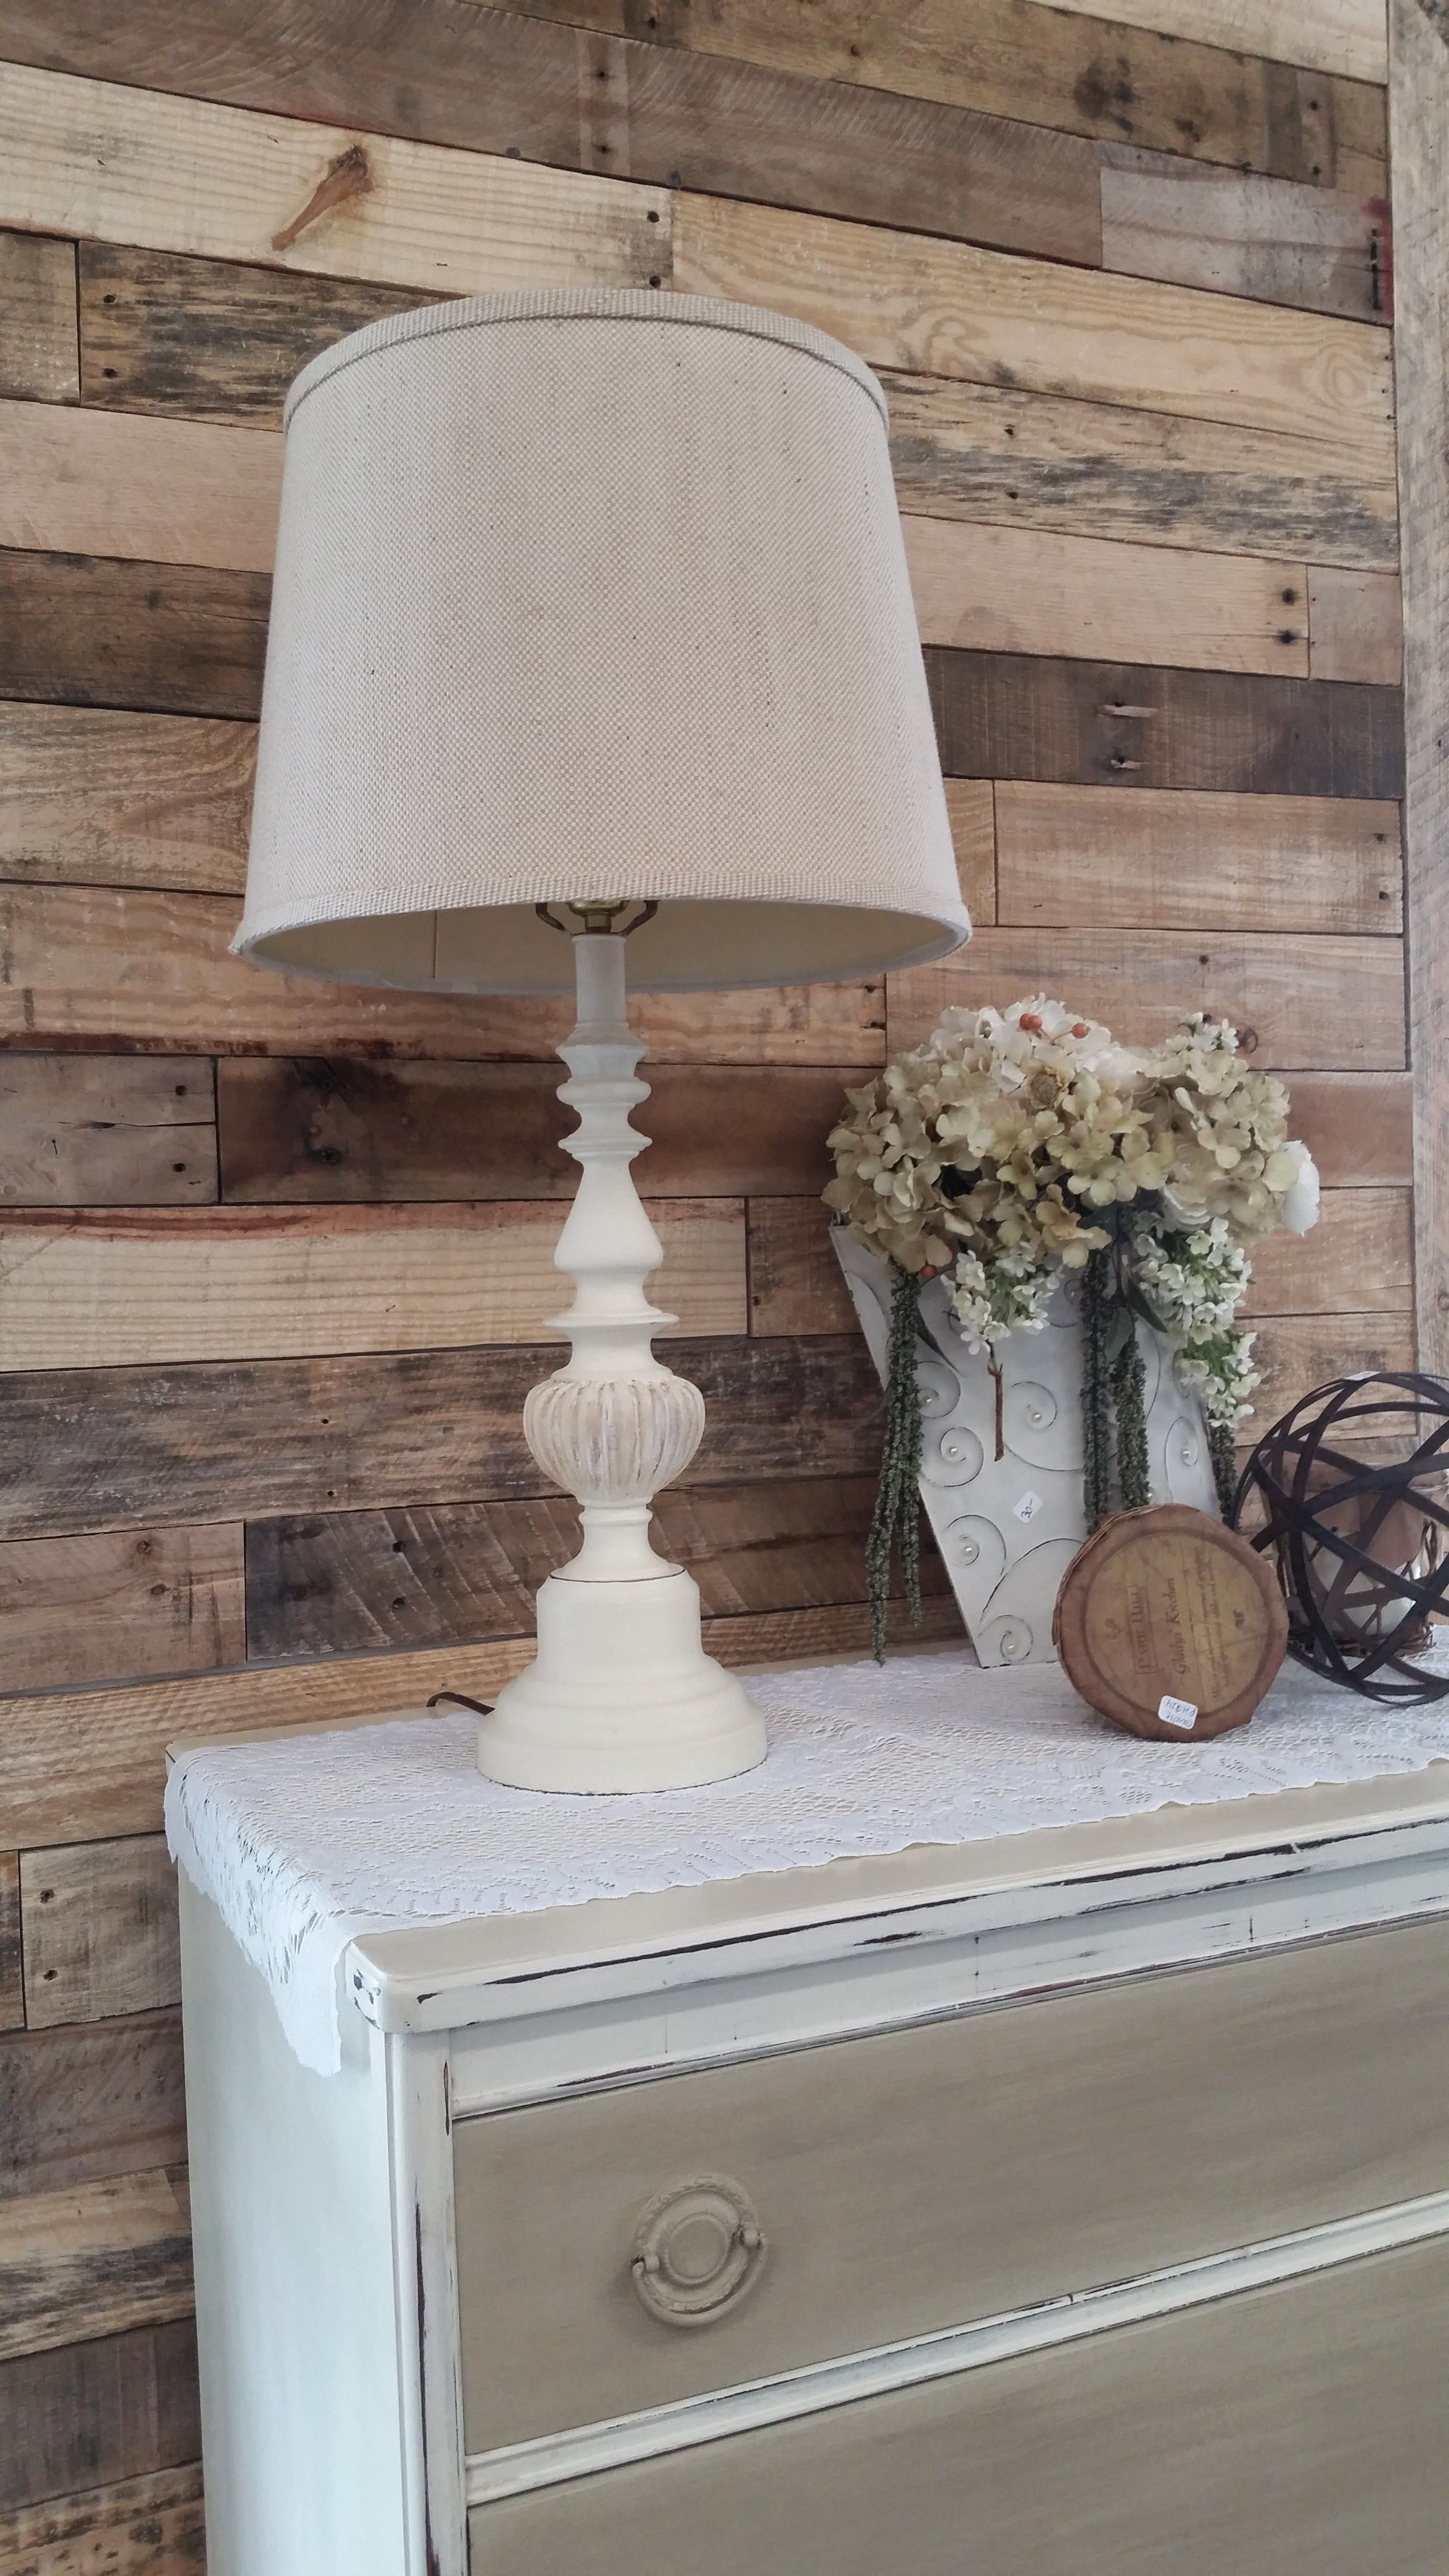 Painted Brass Lamp With Annie Sloan Chalk Paint Old White With Clear And Dark Wax Farmhouse Decor Brass Lamp Paint Brass